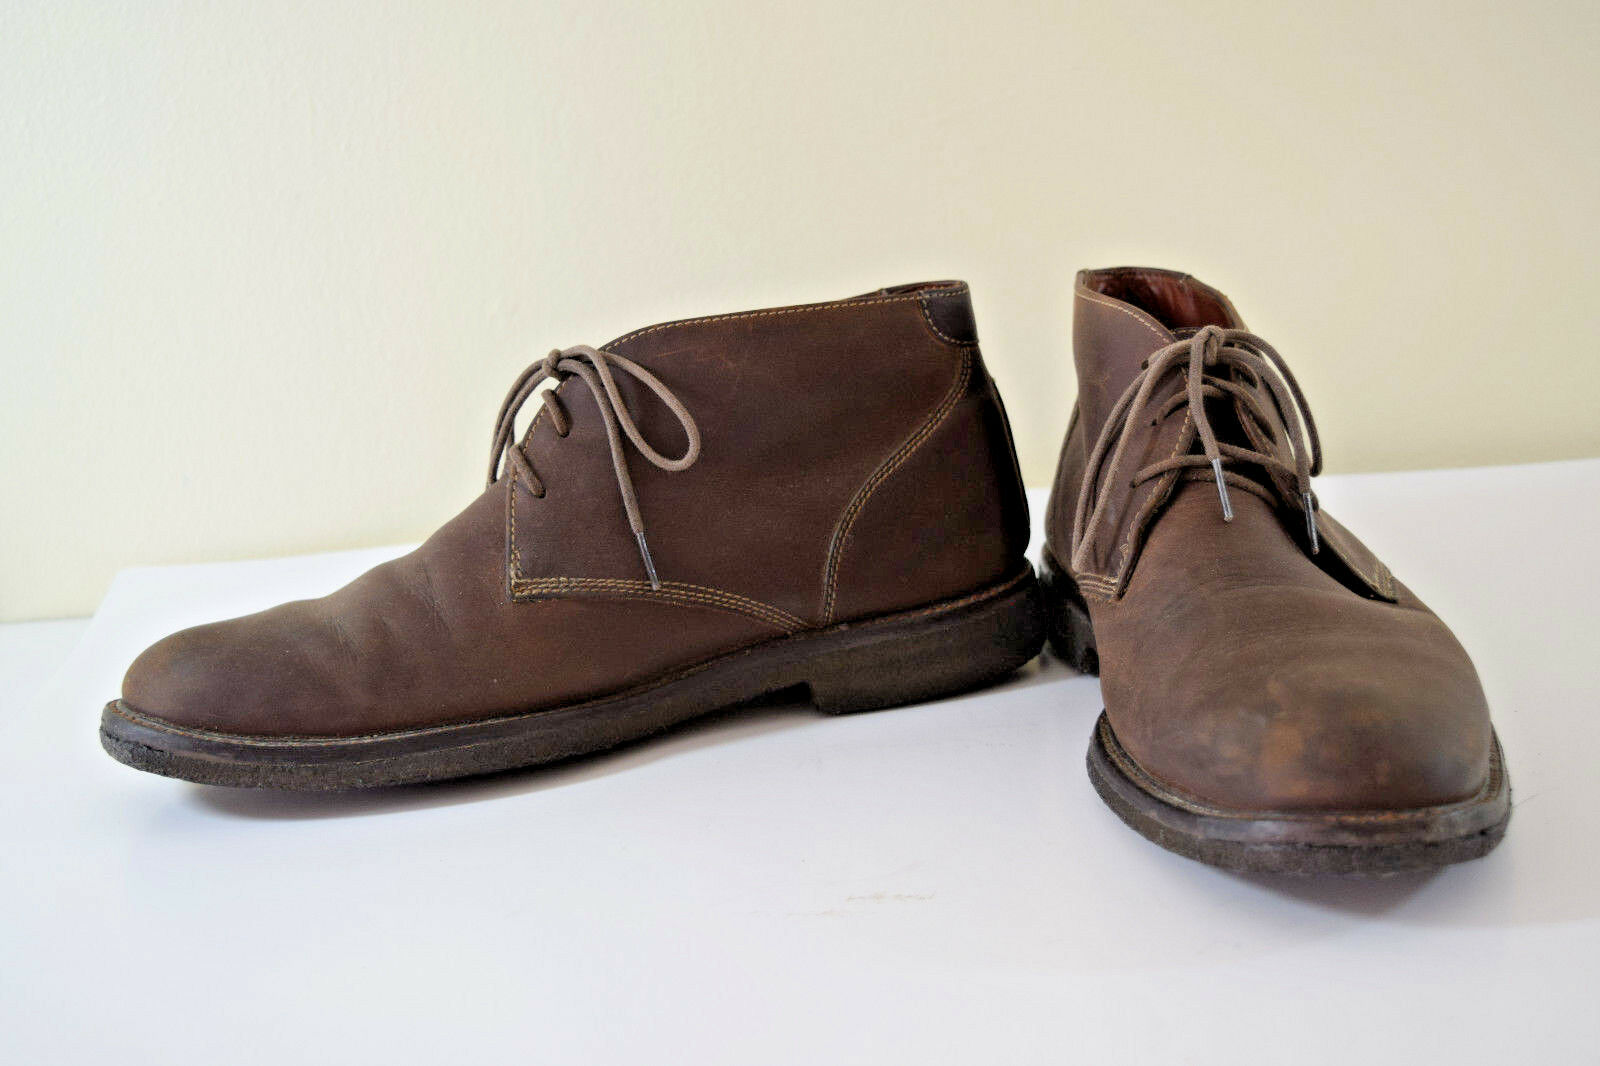 JOHNSTON & MURPHY Mens CHUKKA Boots 9 M COPELAND Tan Leather Lace-Up